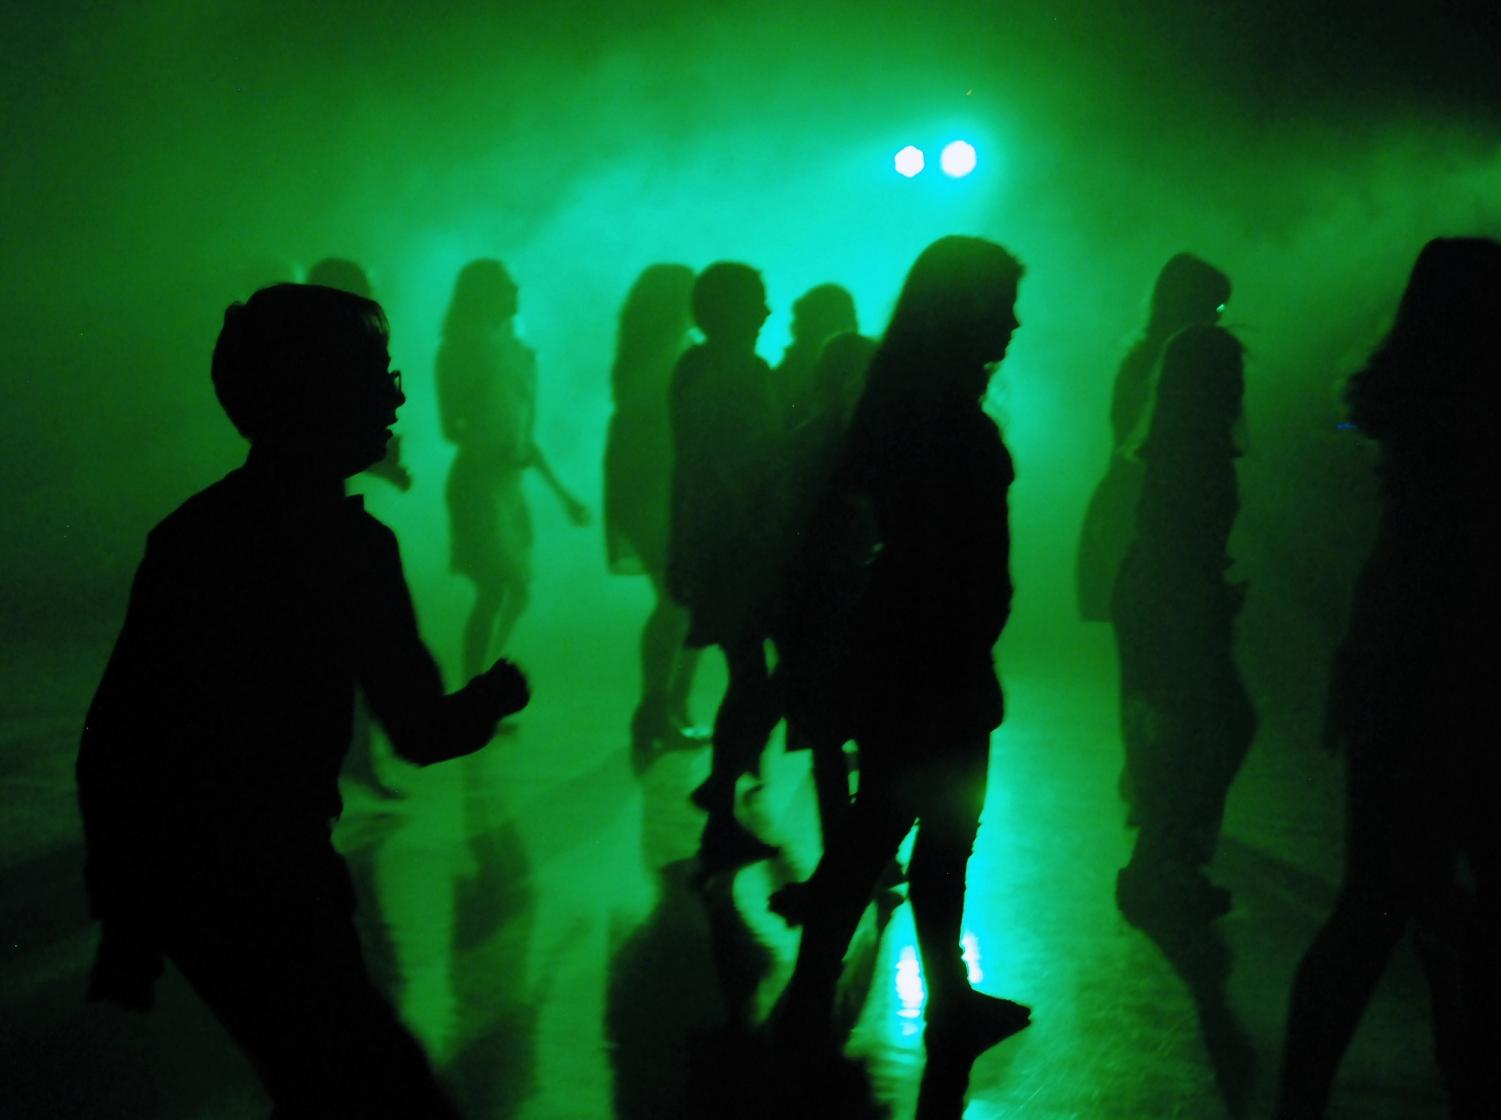 The middle school dance had many cool lights and fog that spread around the dance floor